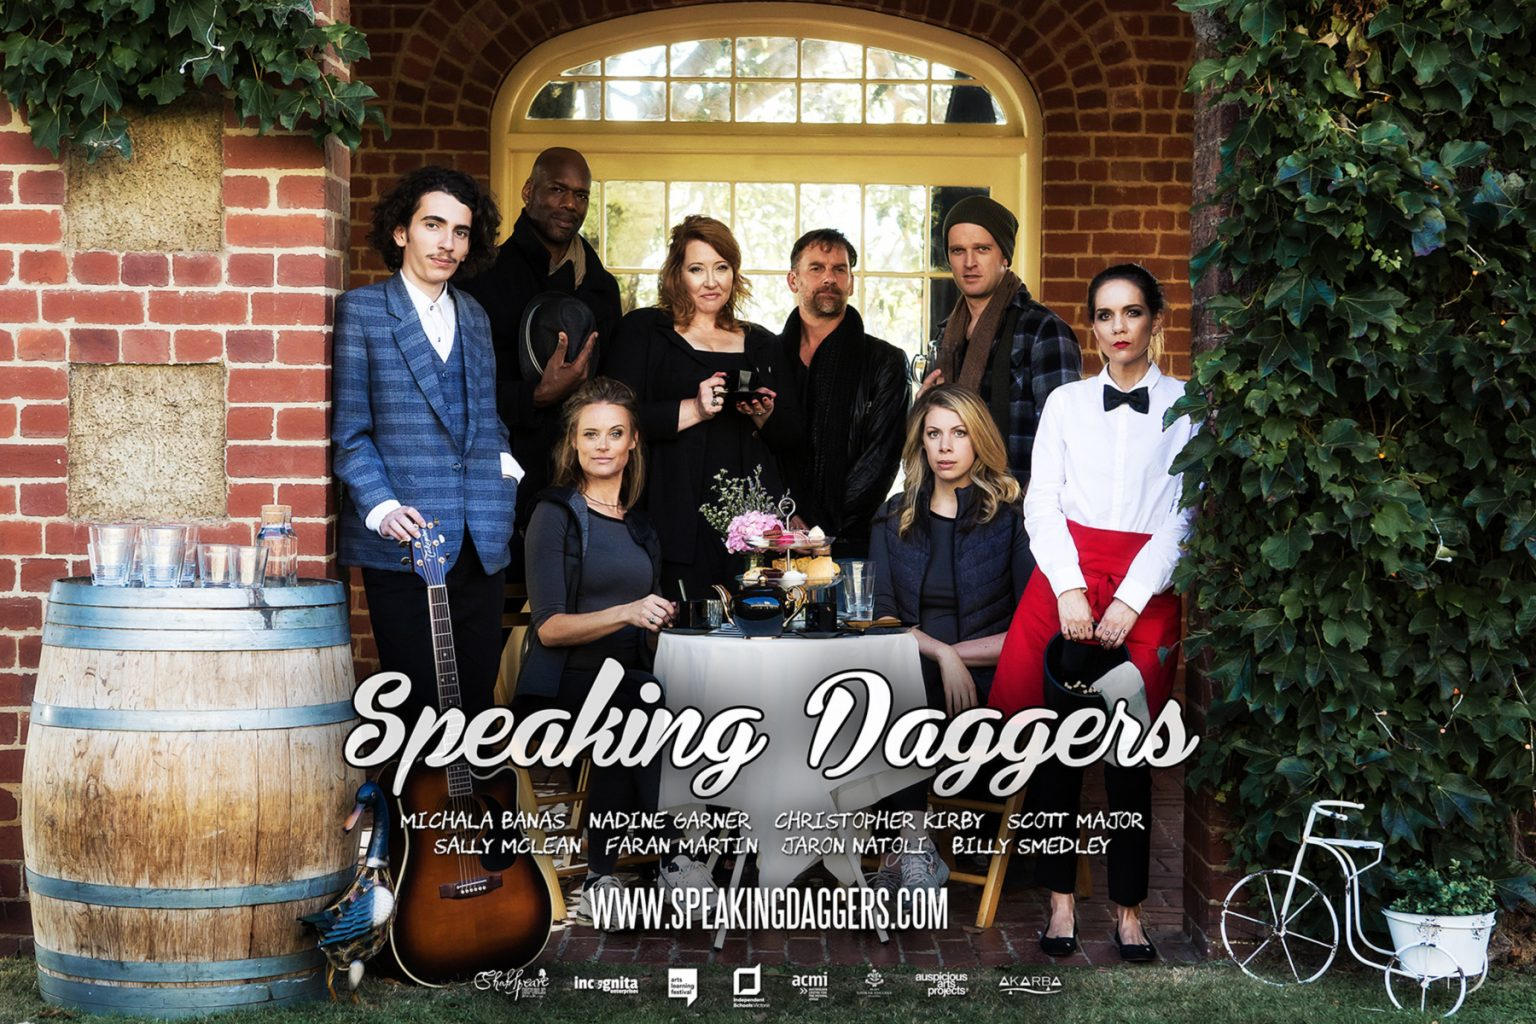 SpeakingDaggers